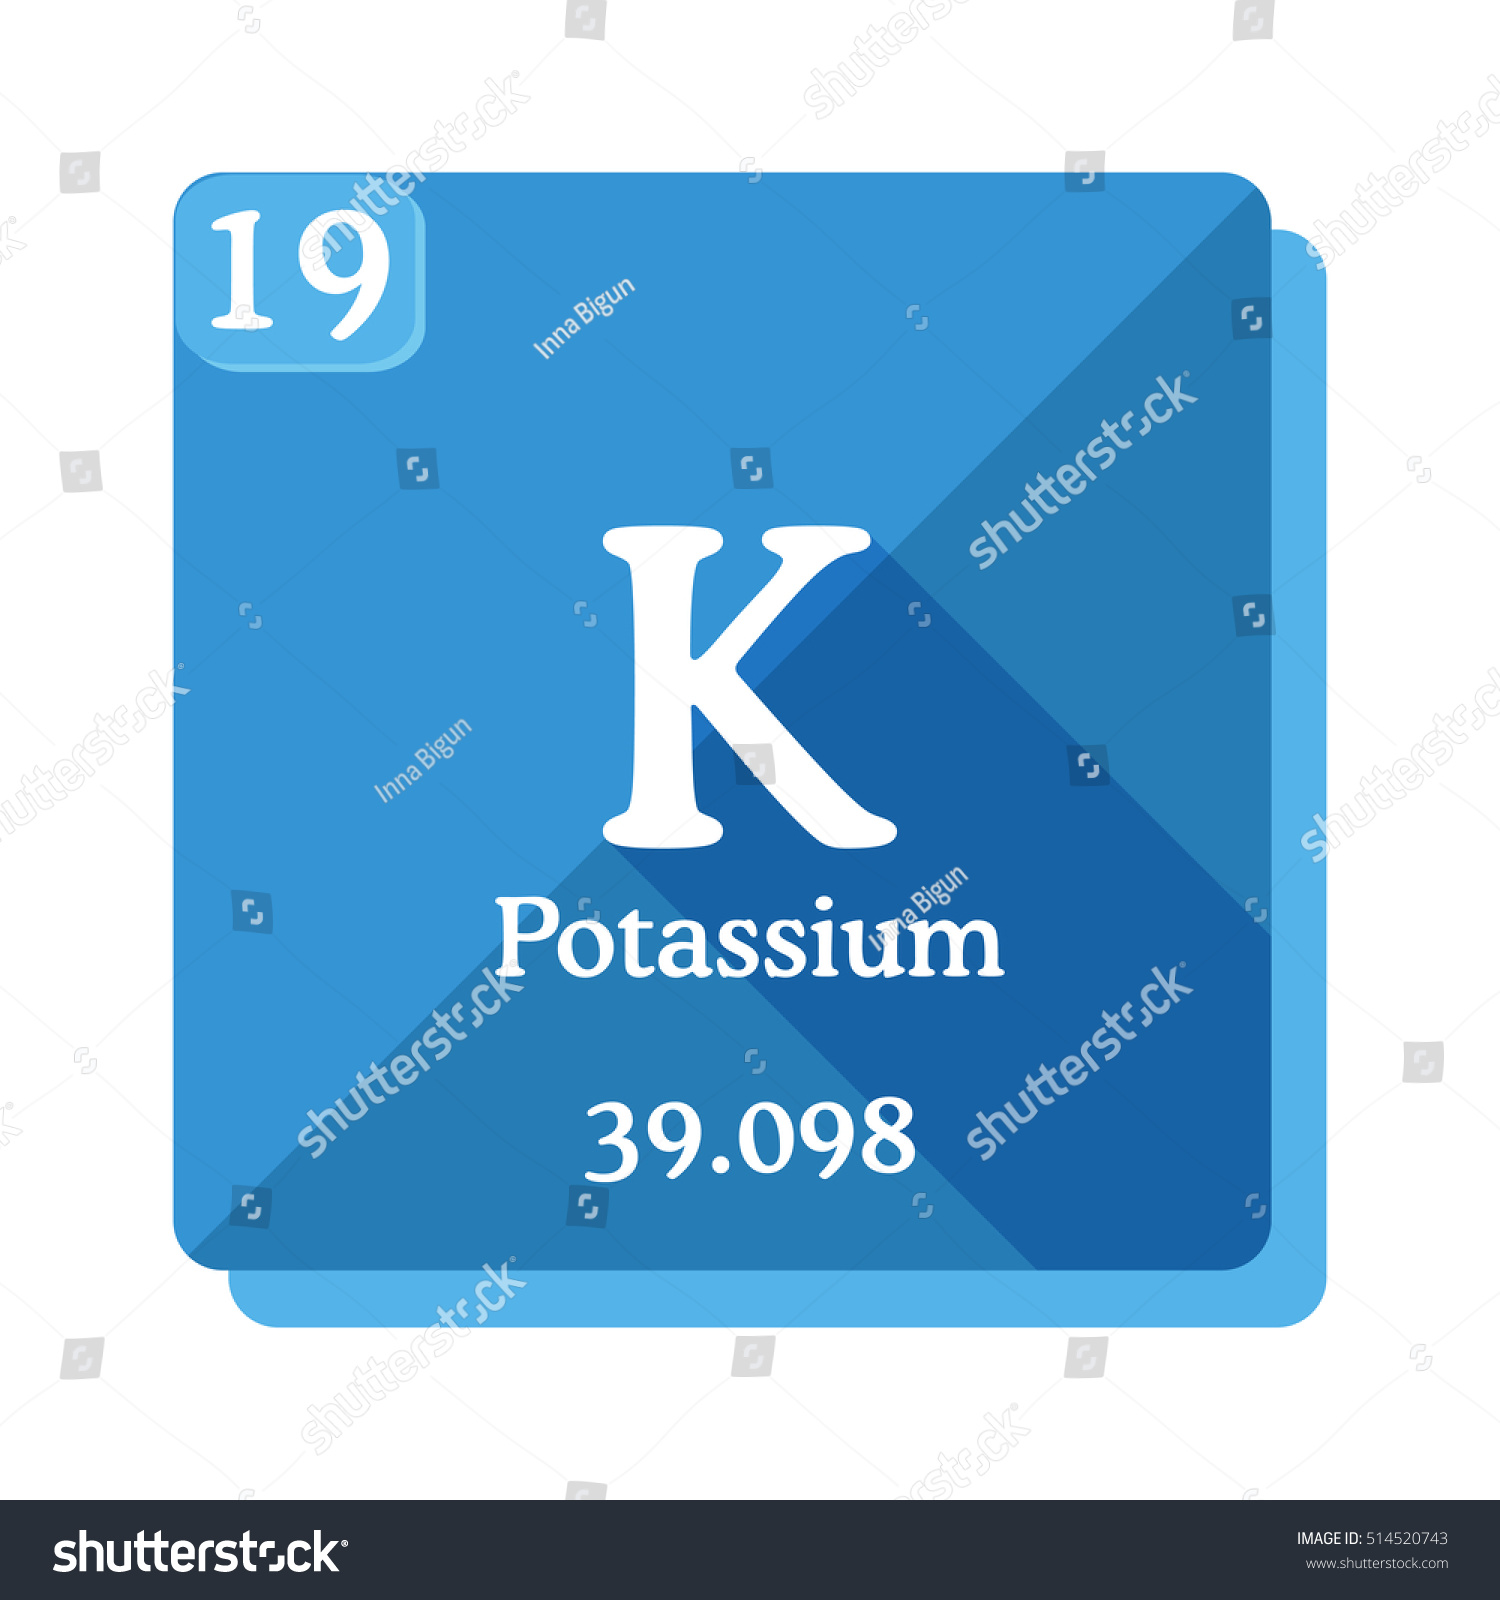 Potassium k element periodic table flat stock vector 514520743 potassium k element of the periodic table flat icon with long shadow urtaz Gallery